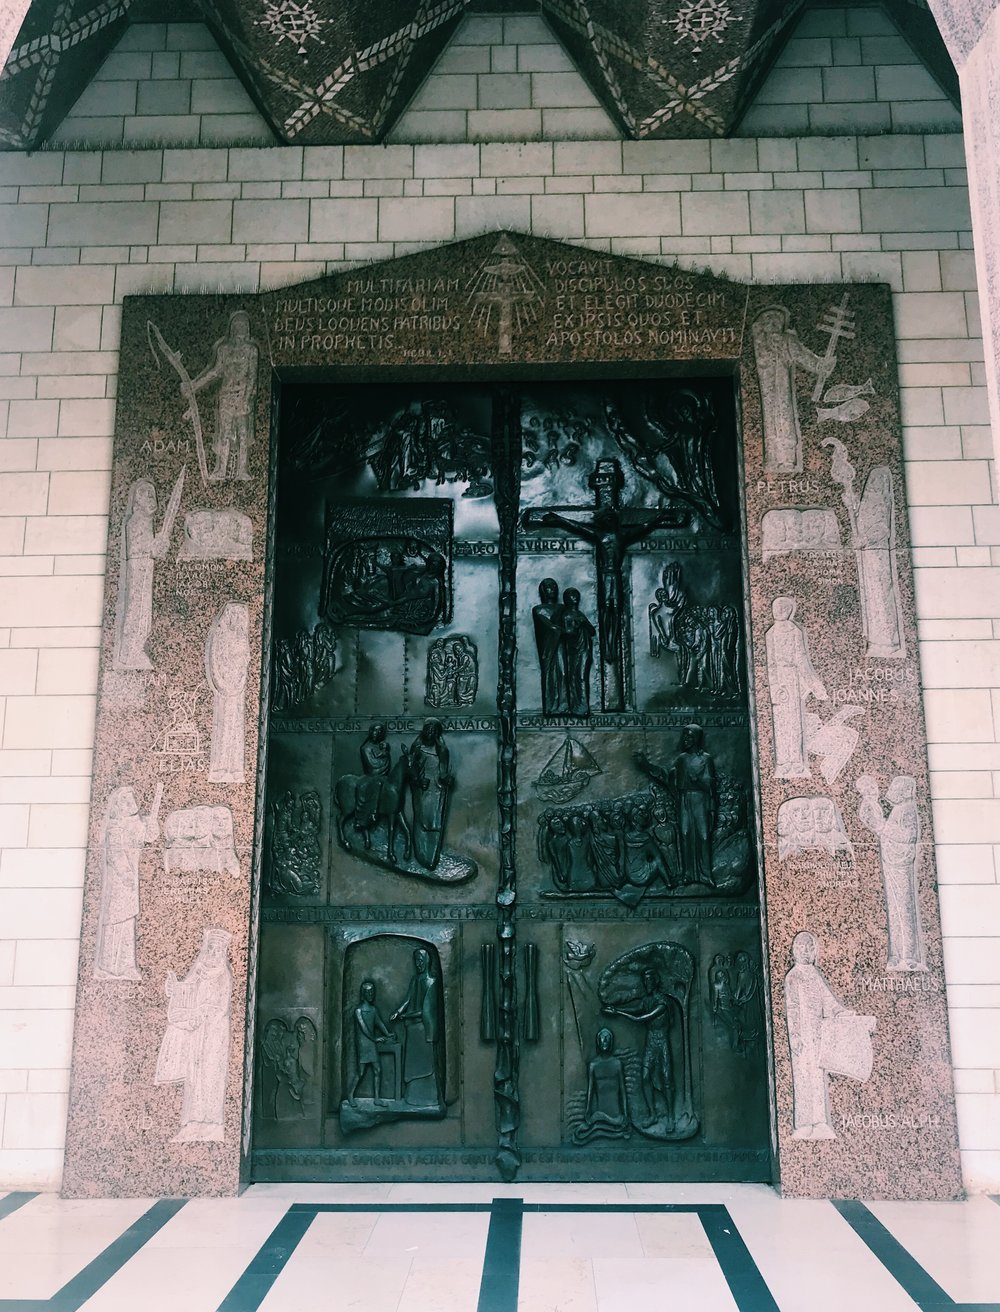 this bronze door took my breath away. each block depicting scenes from the life of Jesus.